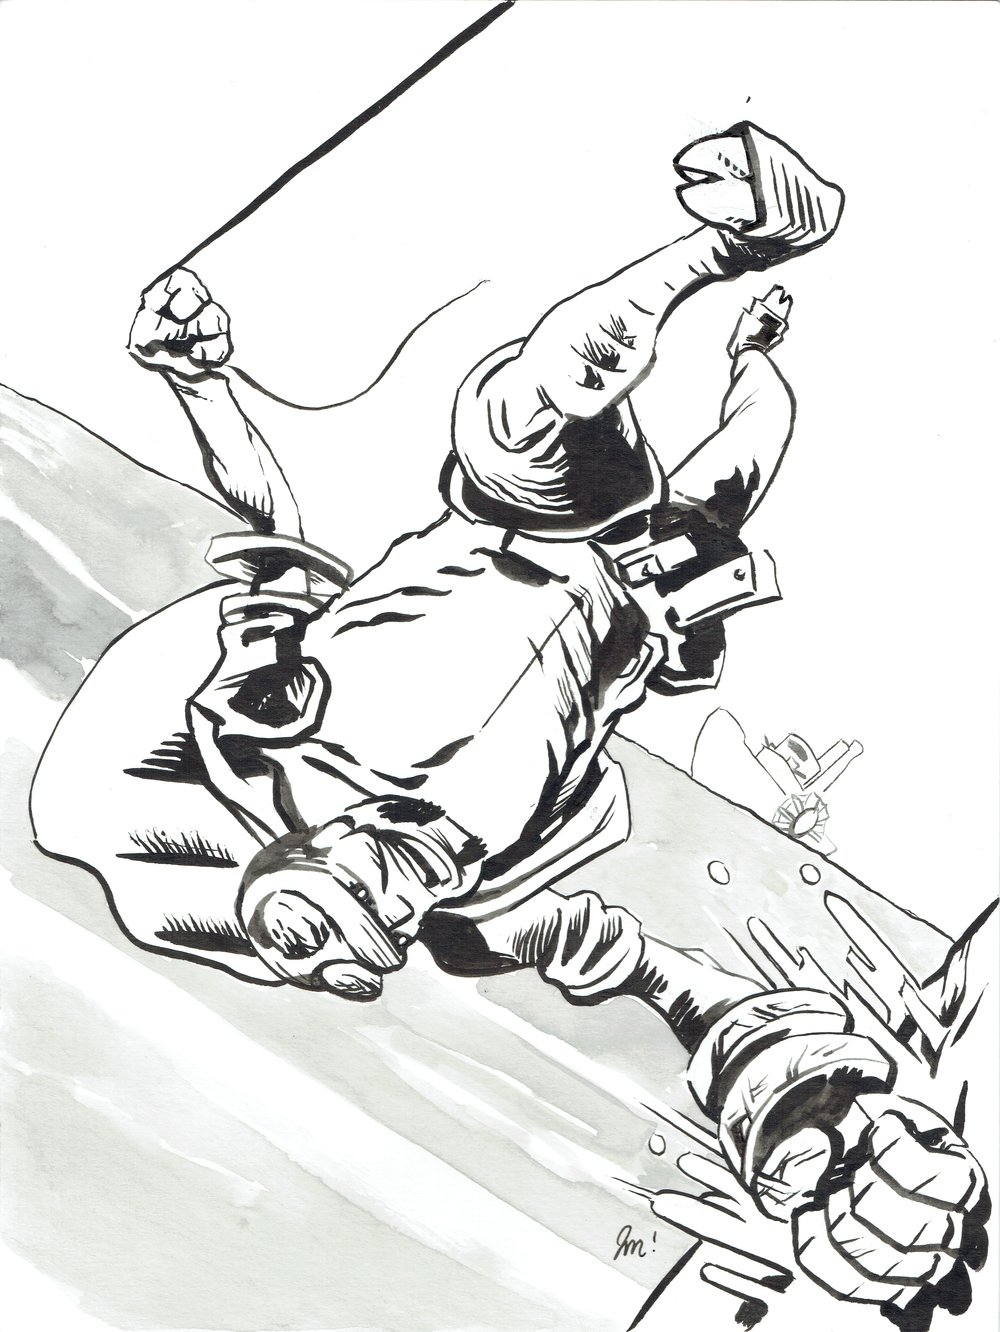 A commission of Hellboy done by J James McFarland